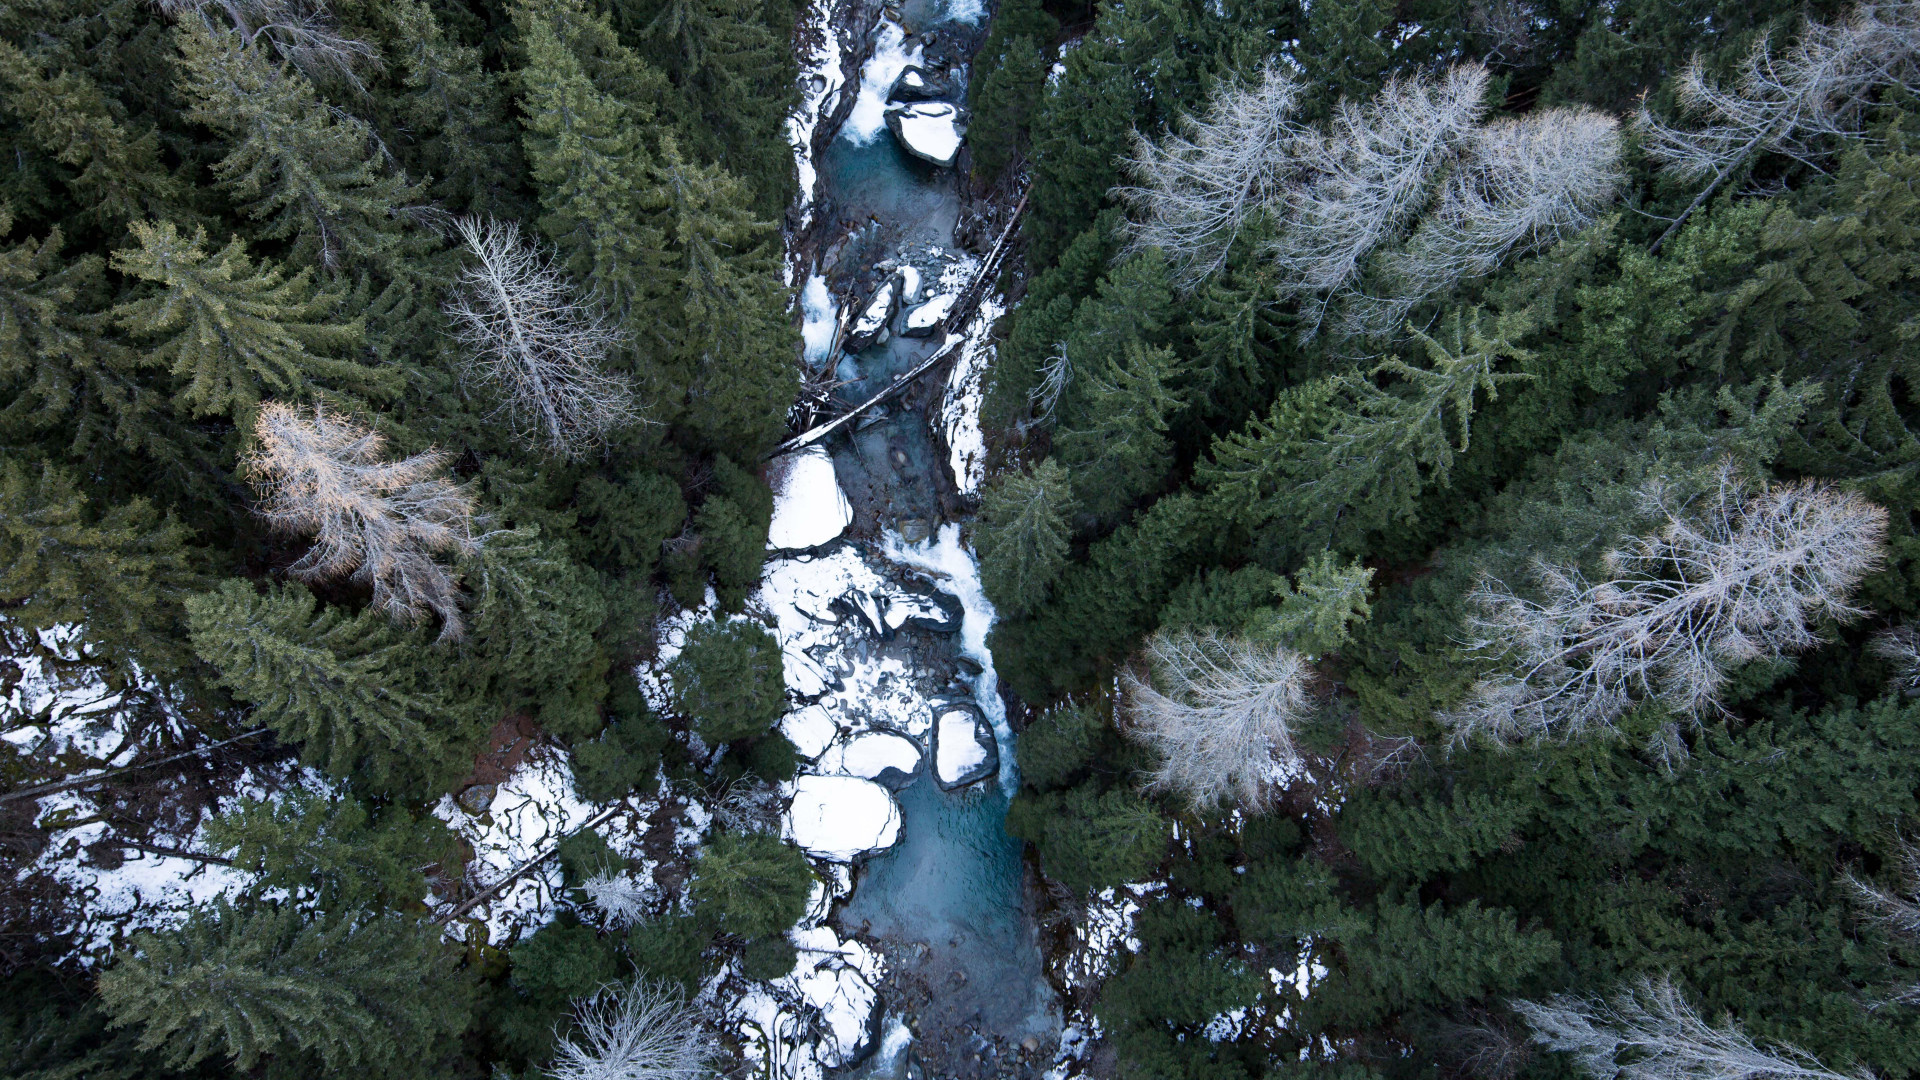 View from a suspension bridge in the Swiss Alps